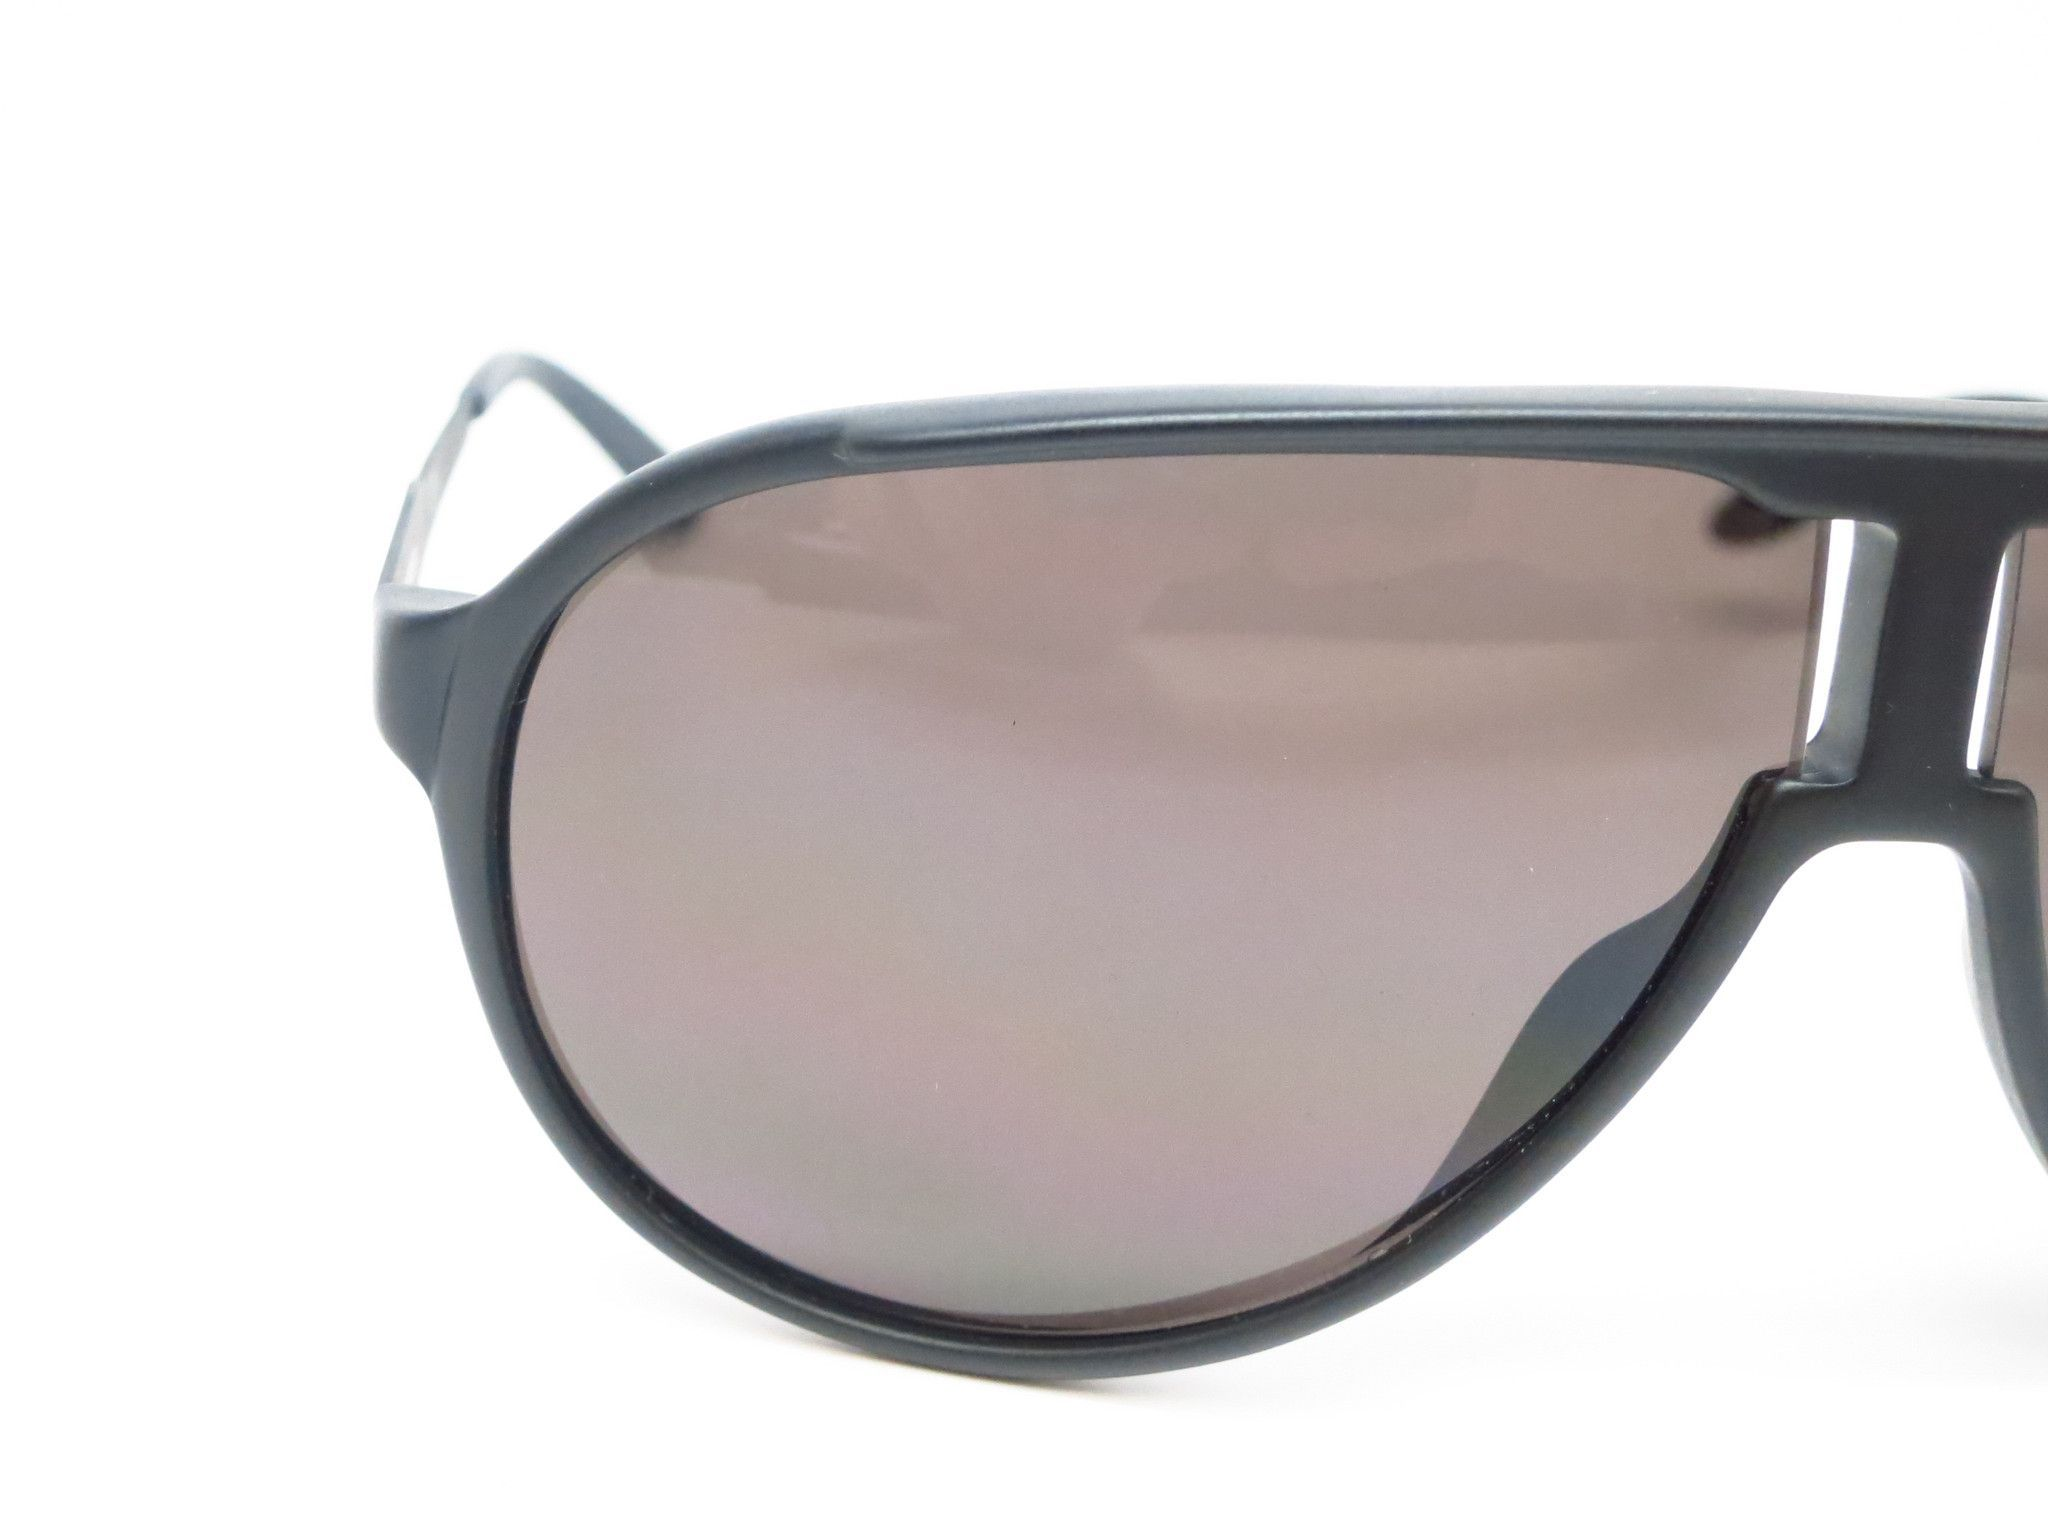 84b064136e3e Features of the Carrera New Champion GUYNR Sunglasses - Pilot shaped optyl  front with metal temples - Lenses offer top UV protection filtering 100% of  all ...